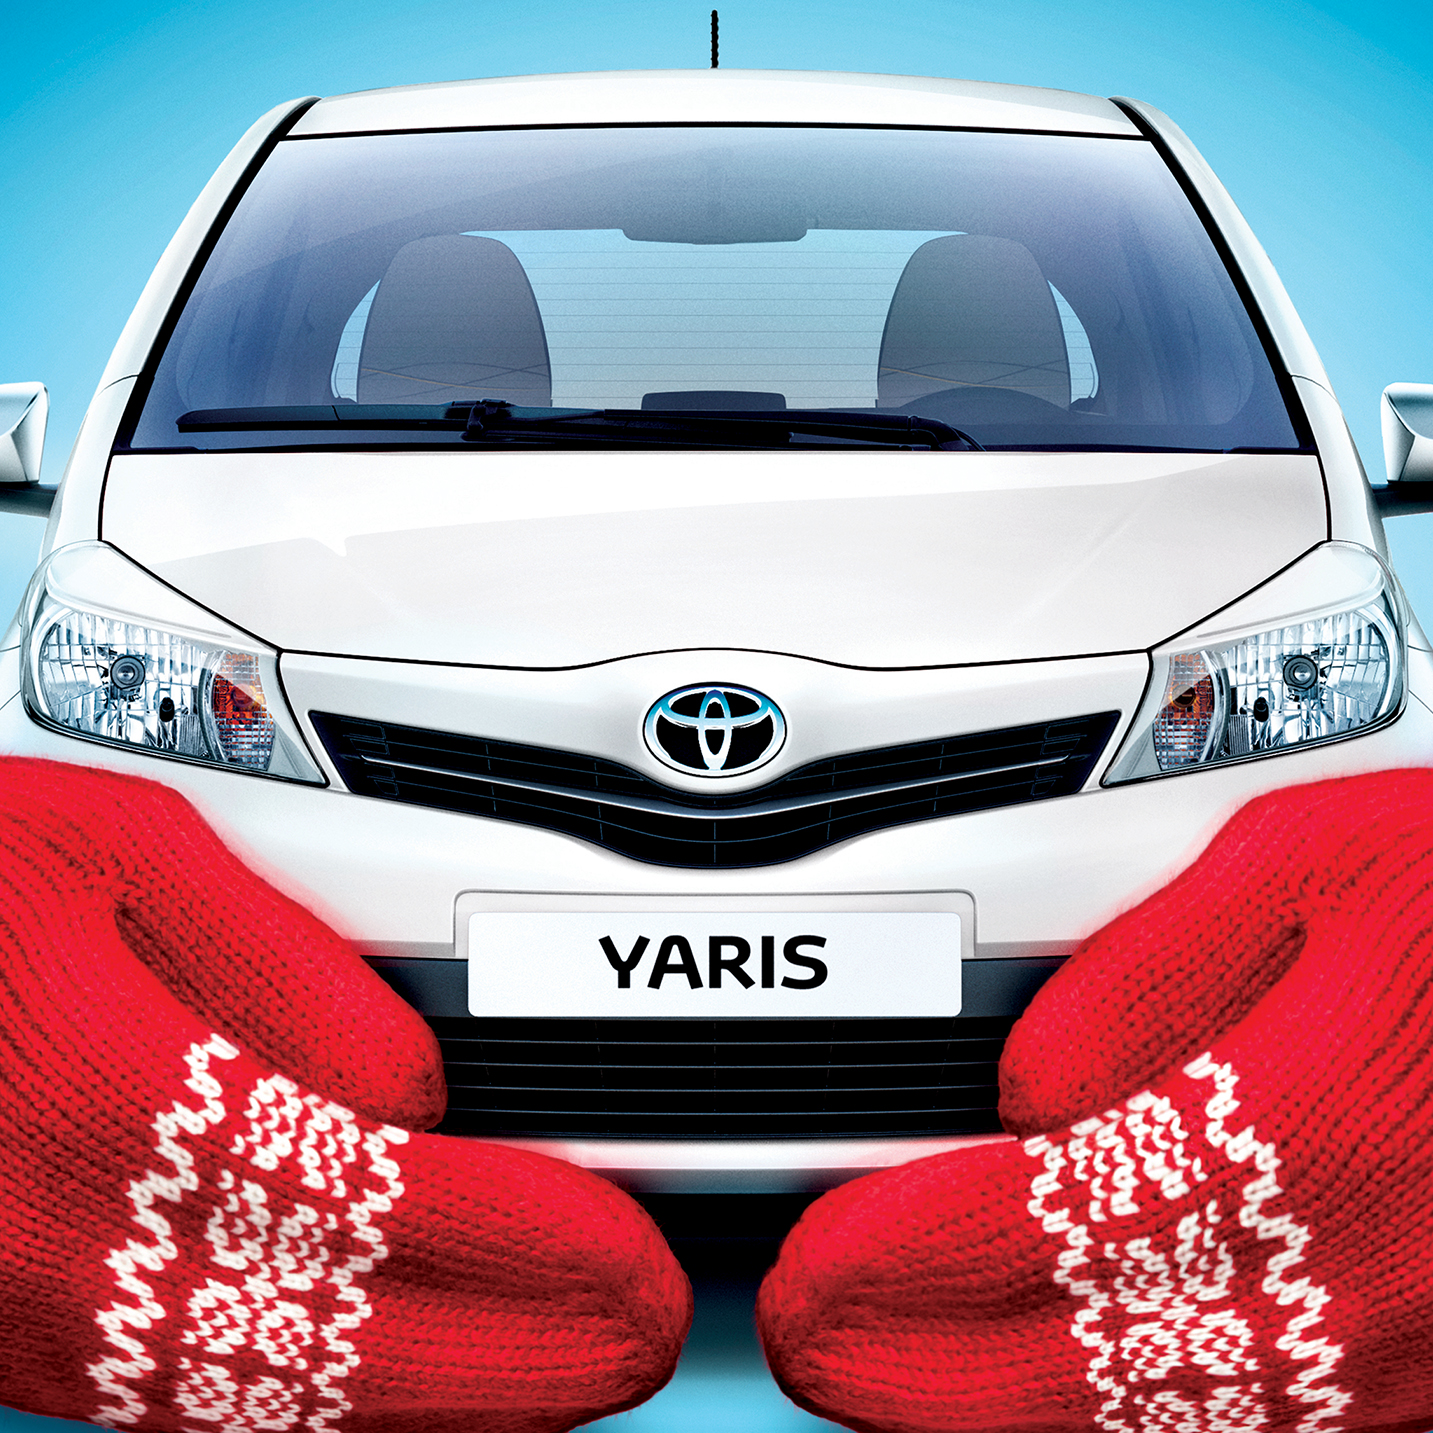 HOME PAGE - TEMPLATE-Recovered_0003_54.Port - Toyota Retouching 5 Mittens.jpg